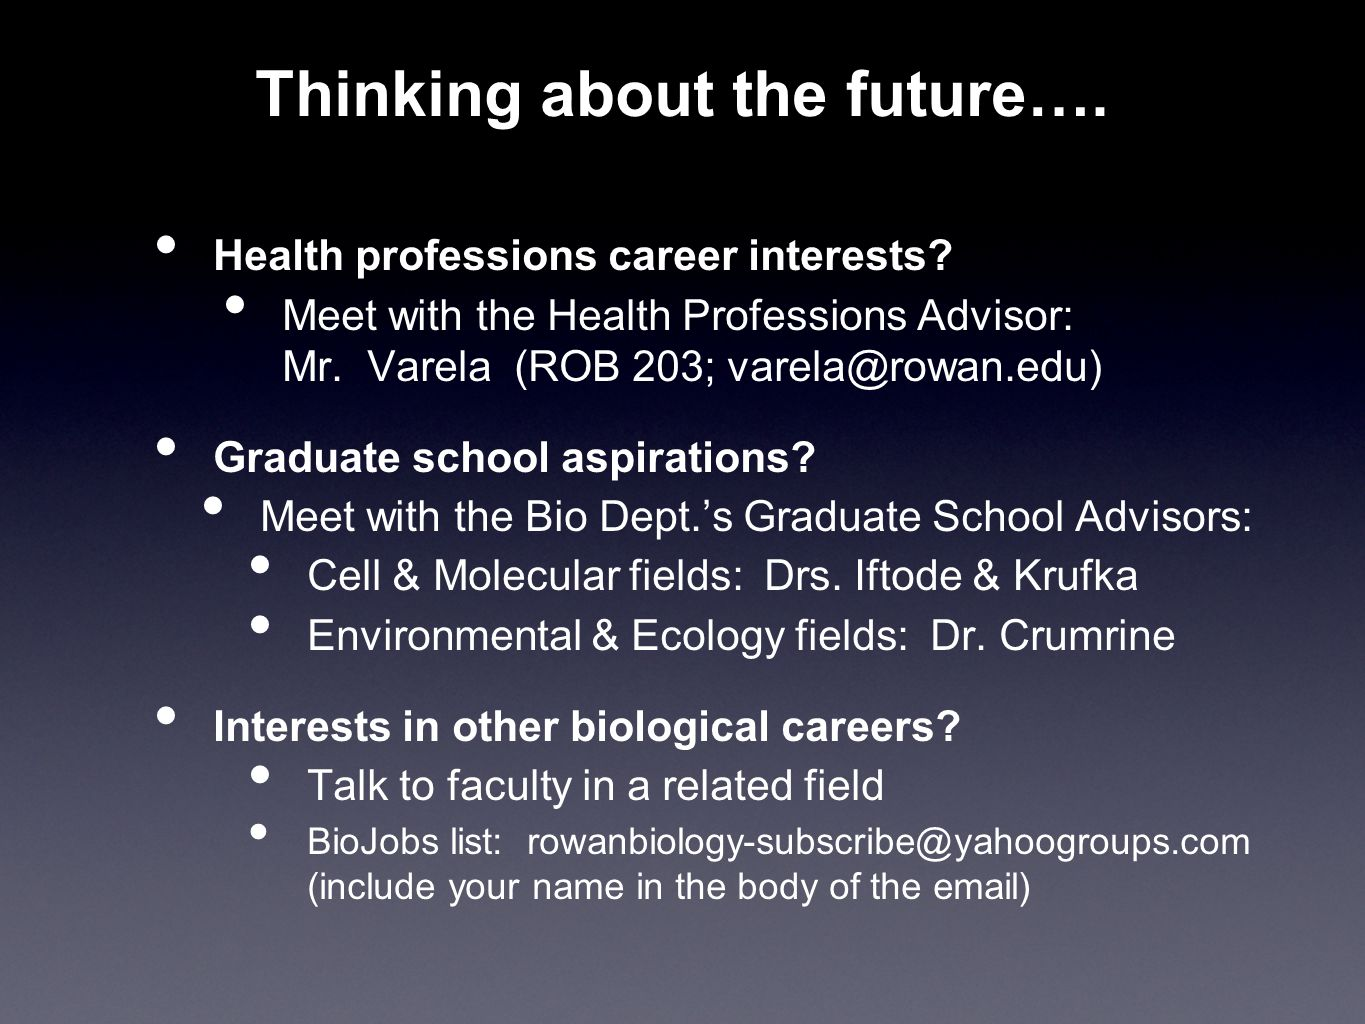 Thinking about the future…. Health professions career interests? Meet with the Health Professions Advisor: Mr. Varela (ROB 203; varela@rowan.edu) Grad